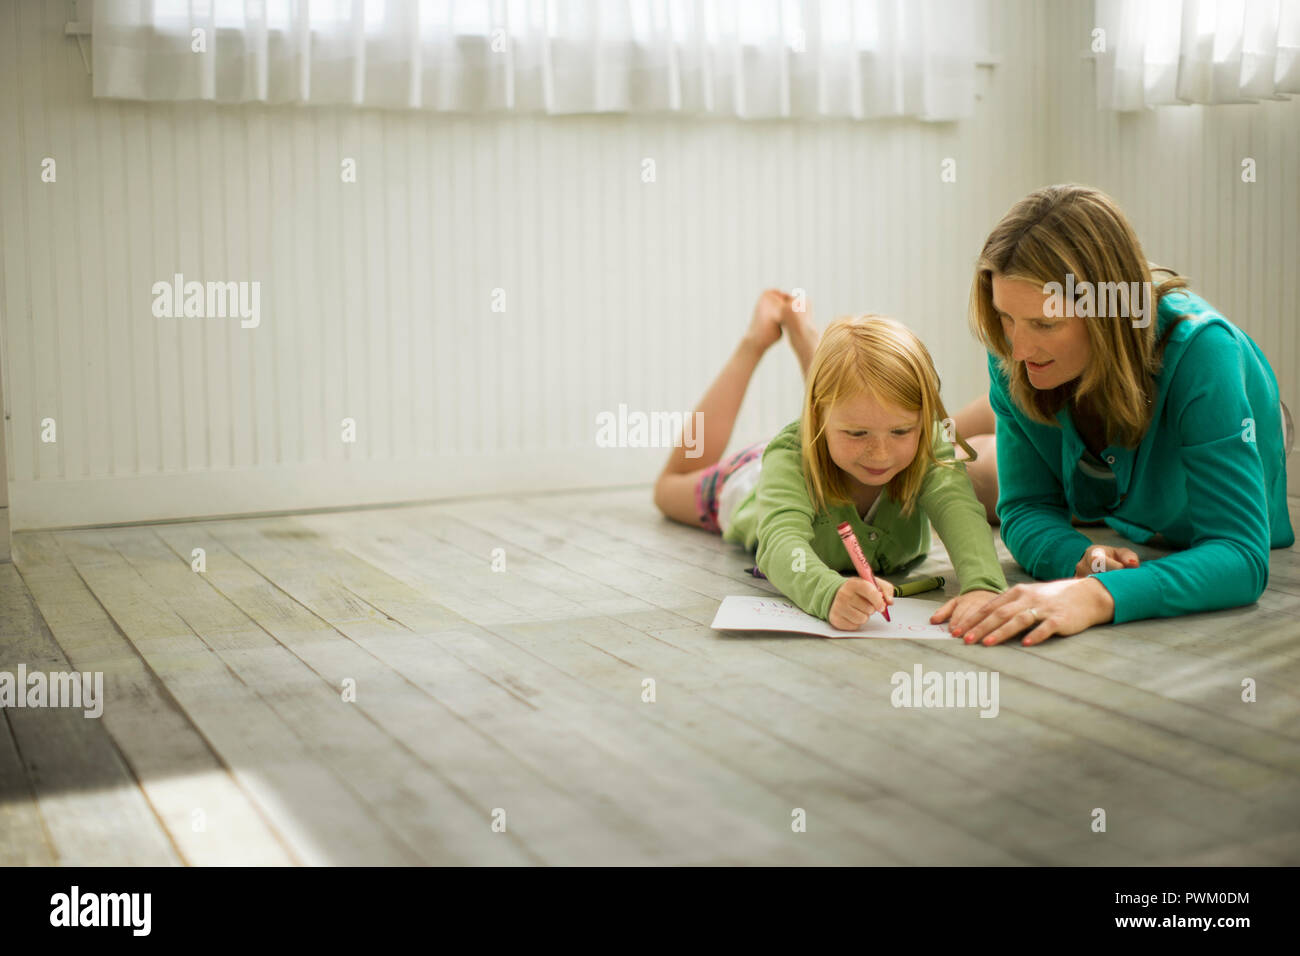 Smiling young girl coloring with her mother. Stock Photo